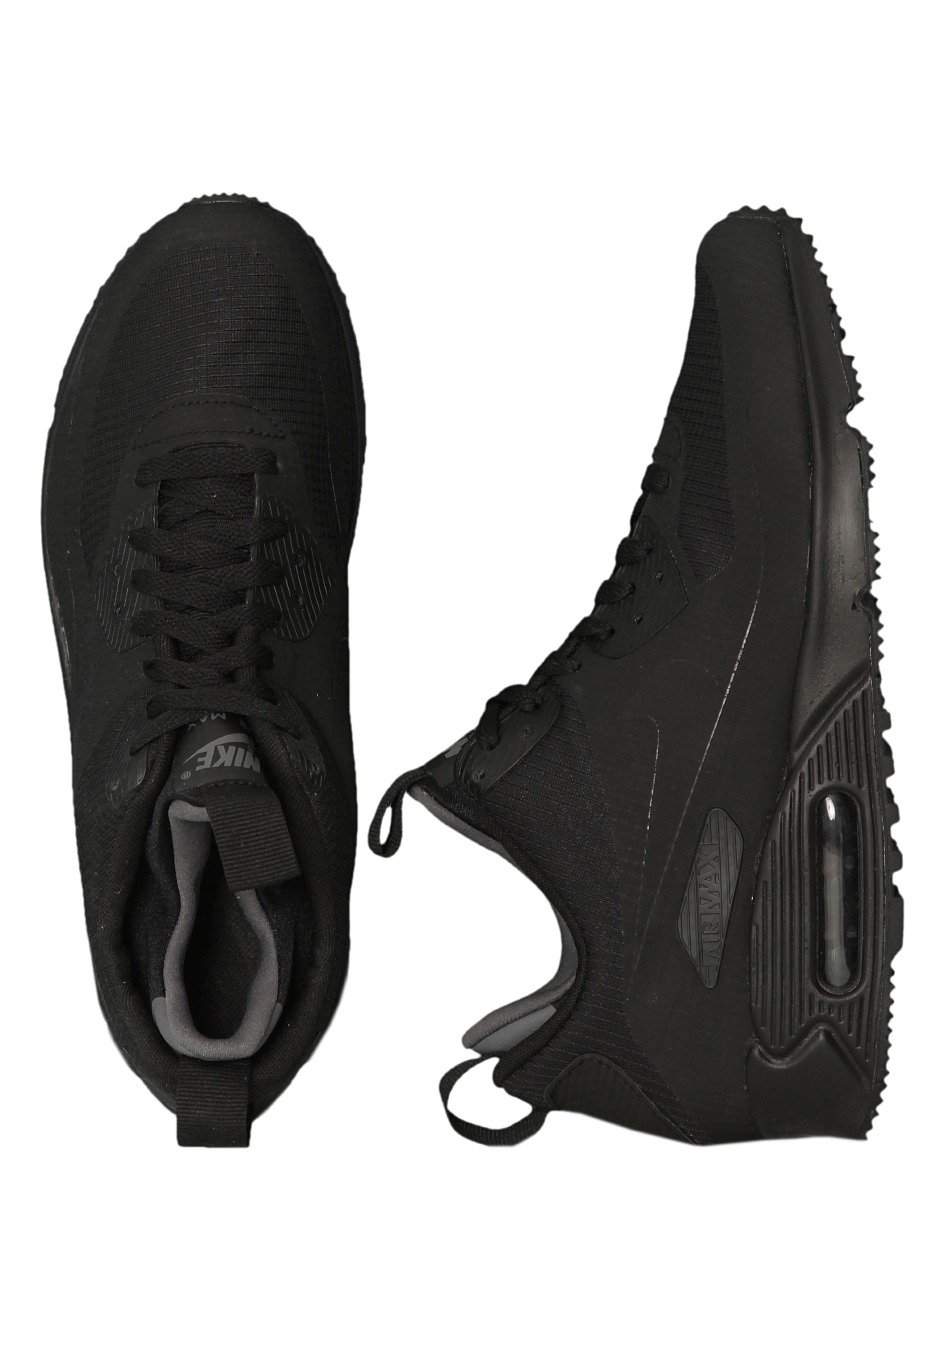 24a2975786c900 Nike - Air Max 90 Mid Winter Black Black - Shoes - Impericon.com Worldwide